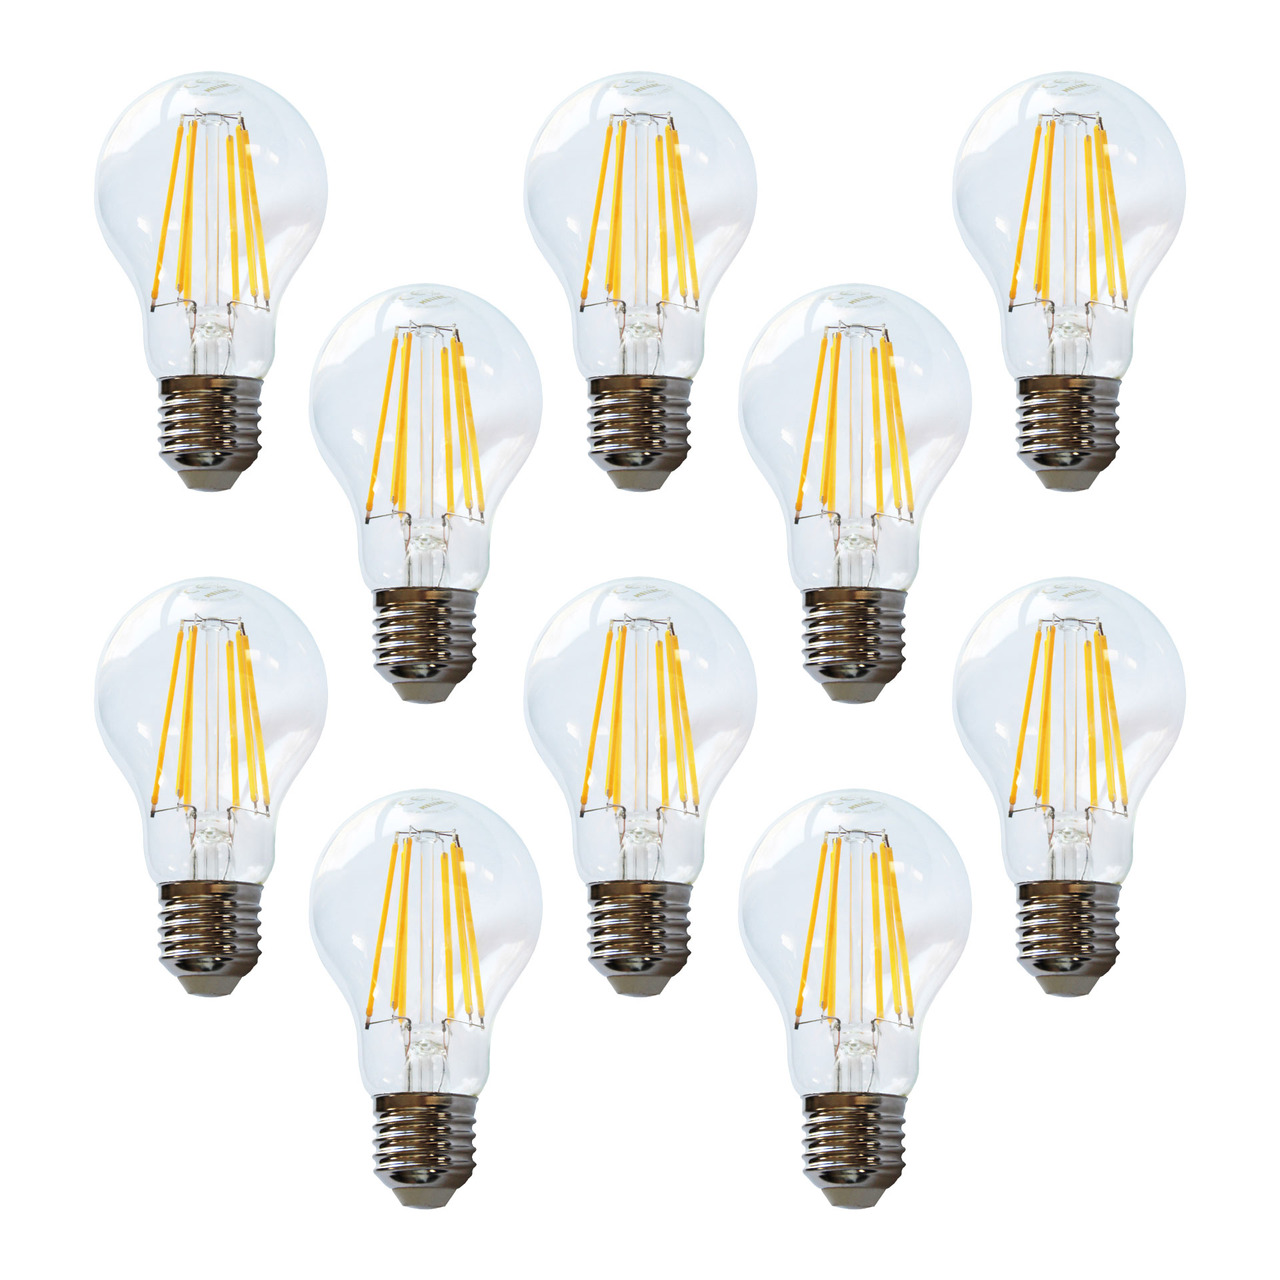 HEITEC 10er-Spar-Set 8-W-Filament-LED-Lampe A60- E27- 810 lm- warmweiss- klar